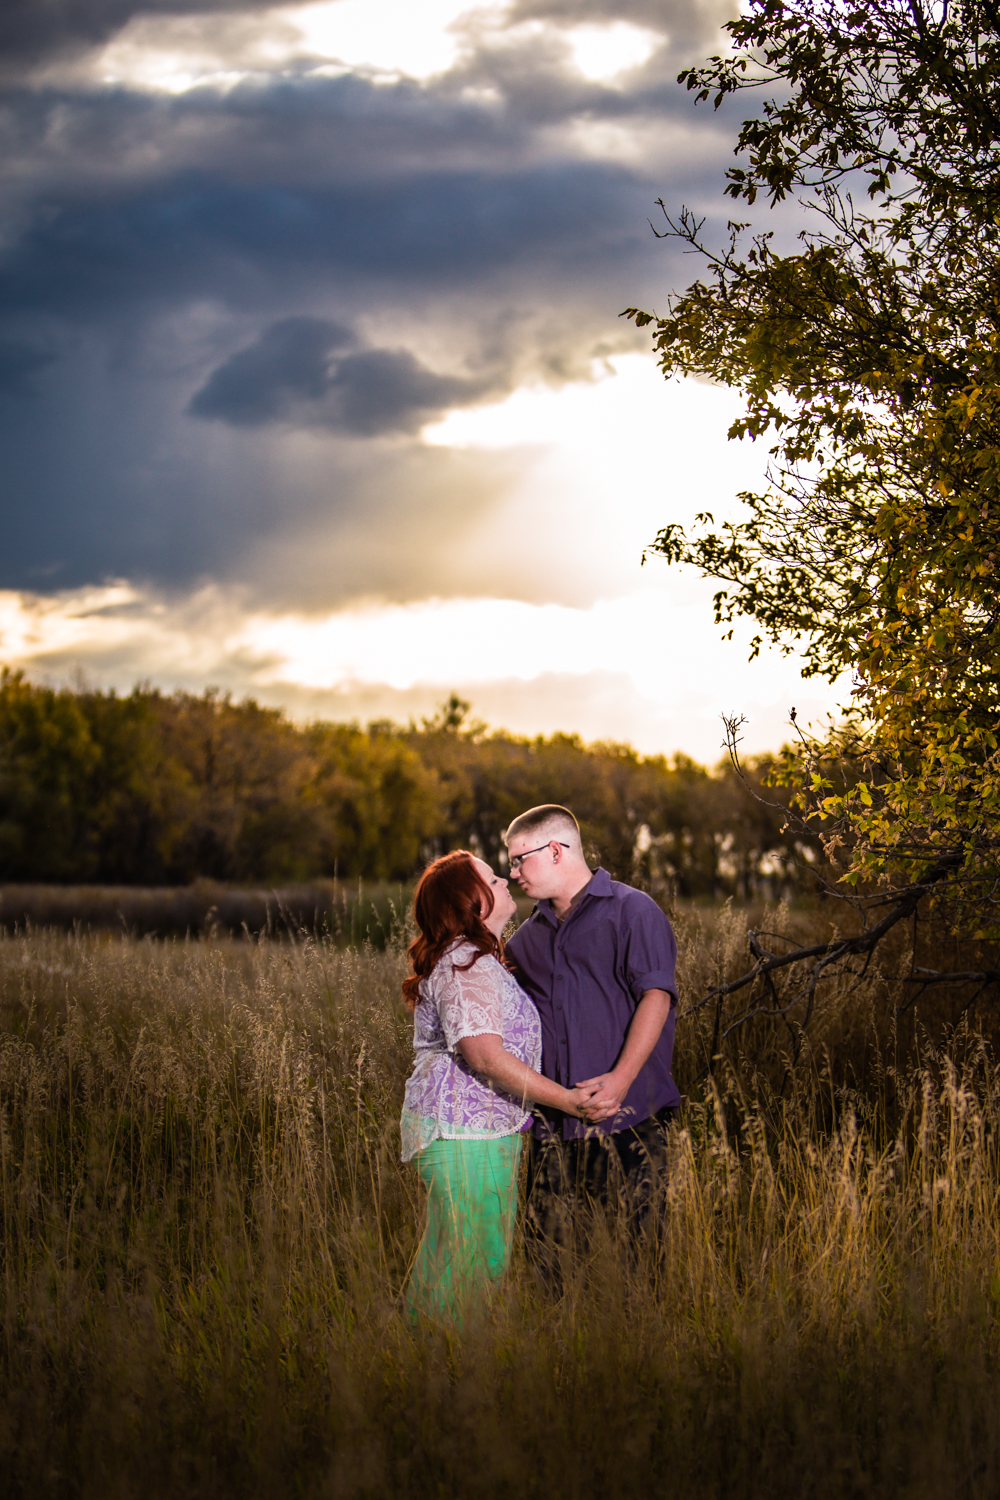 Sunset engagements at Sandstone Ranch Park in Longmont Colorado.